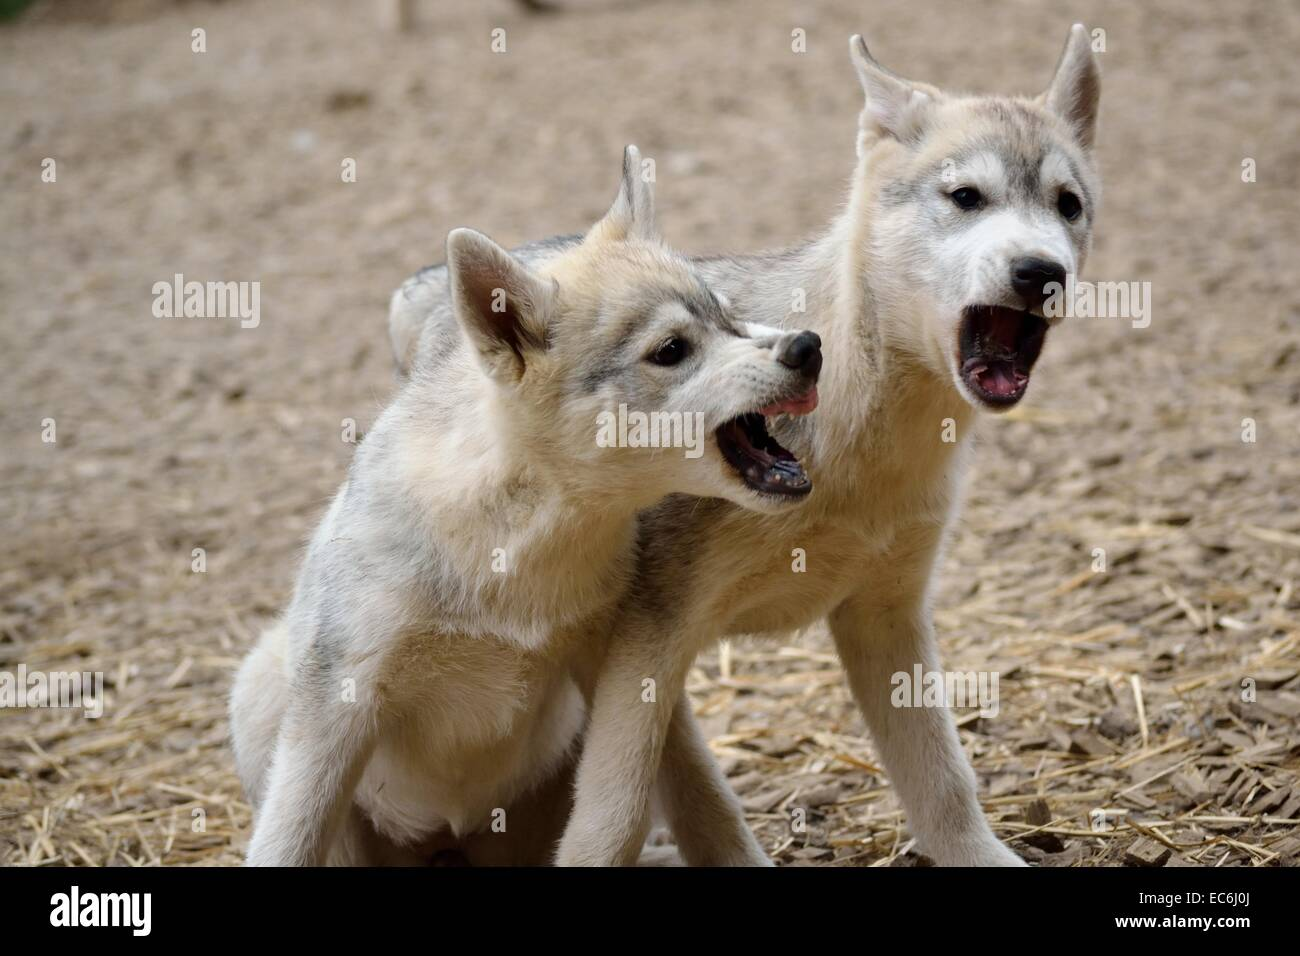 Rank dispute under Puppies - Stock Image